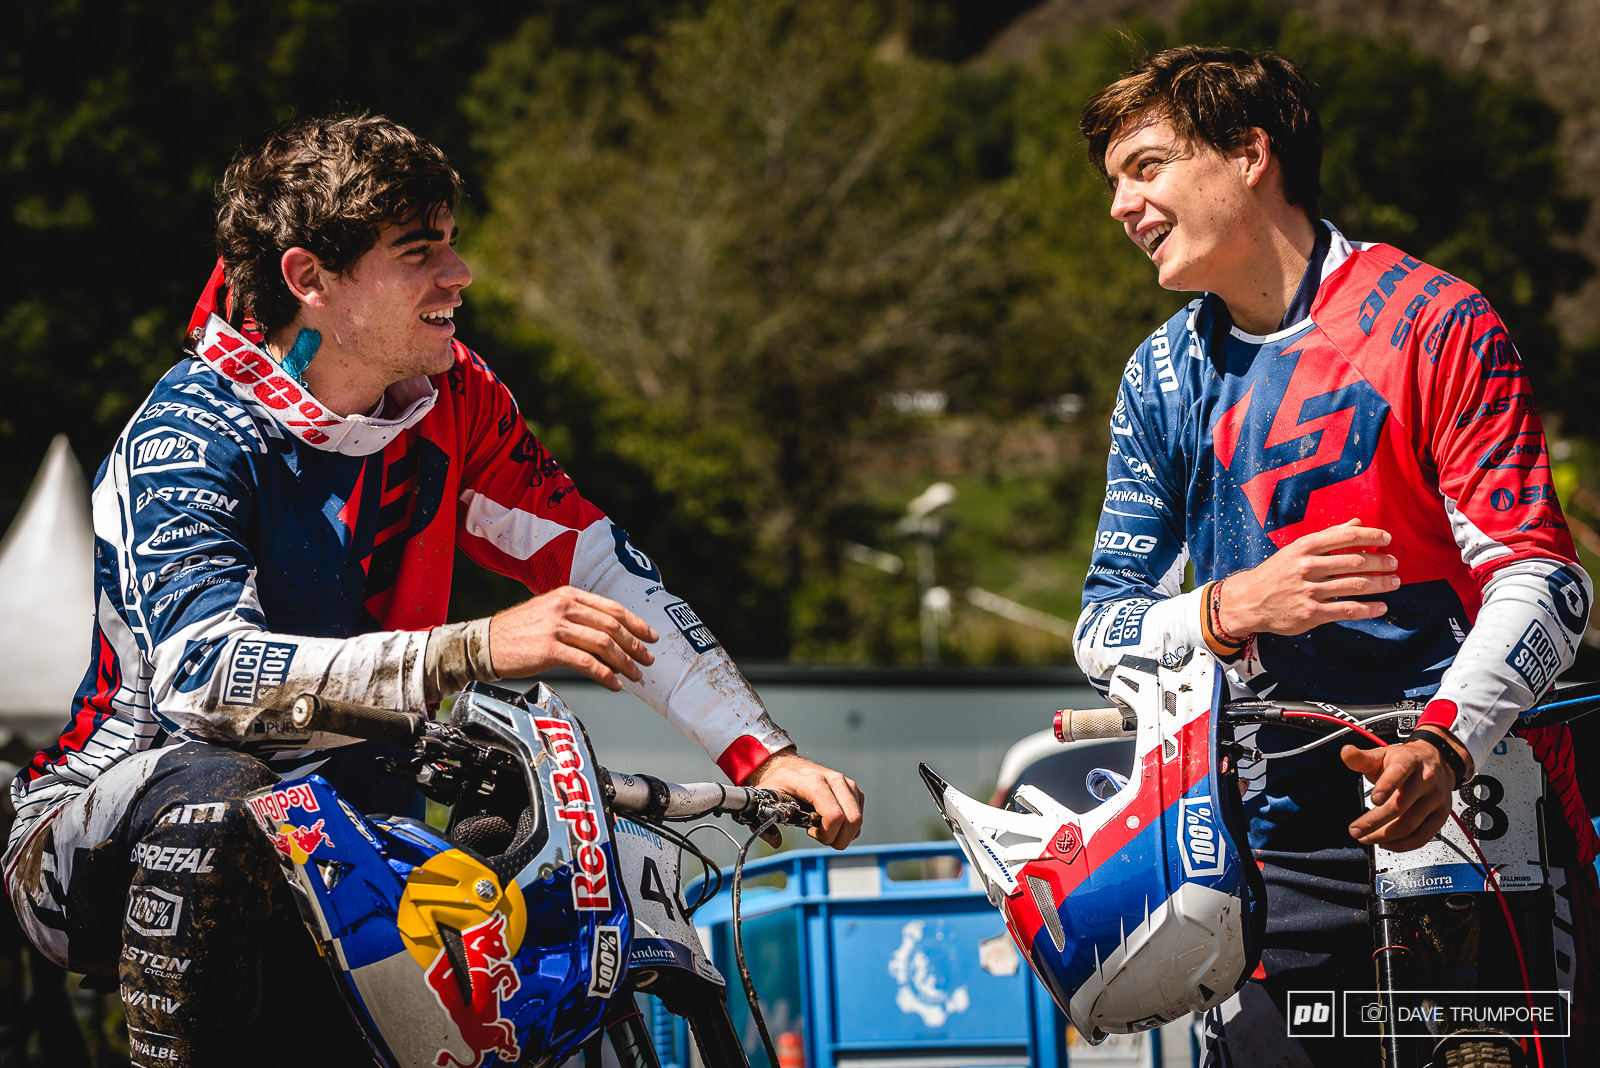 Loic and Loris trading battle stores after a muddy training session in Andorra.